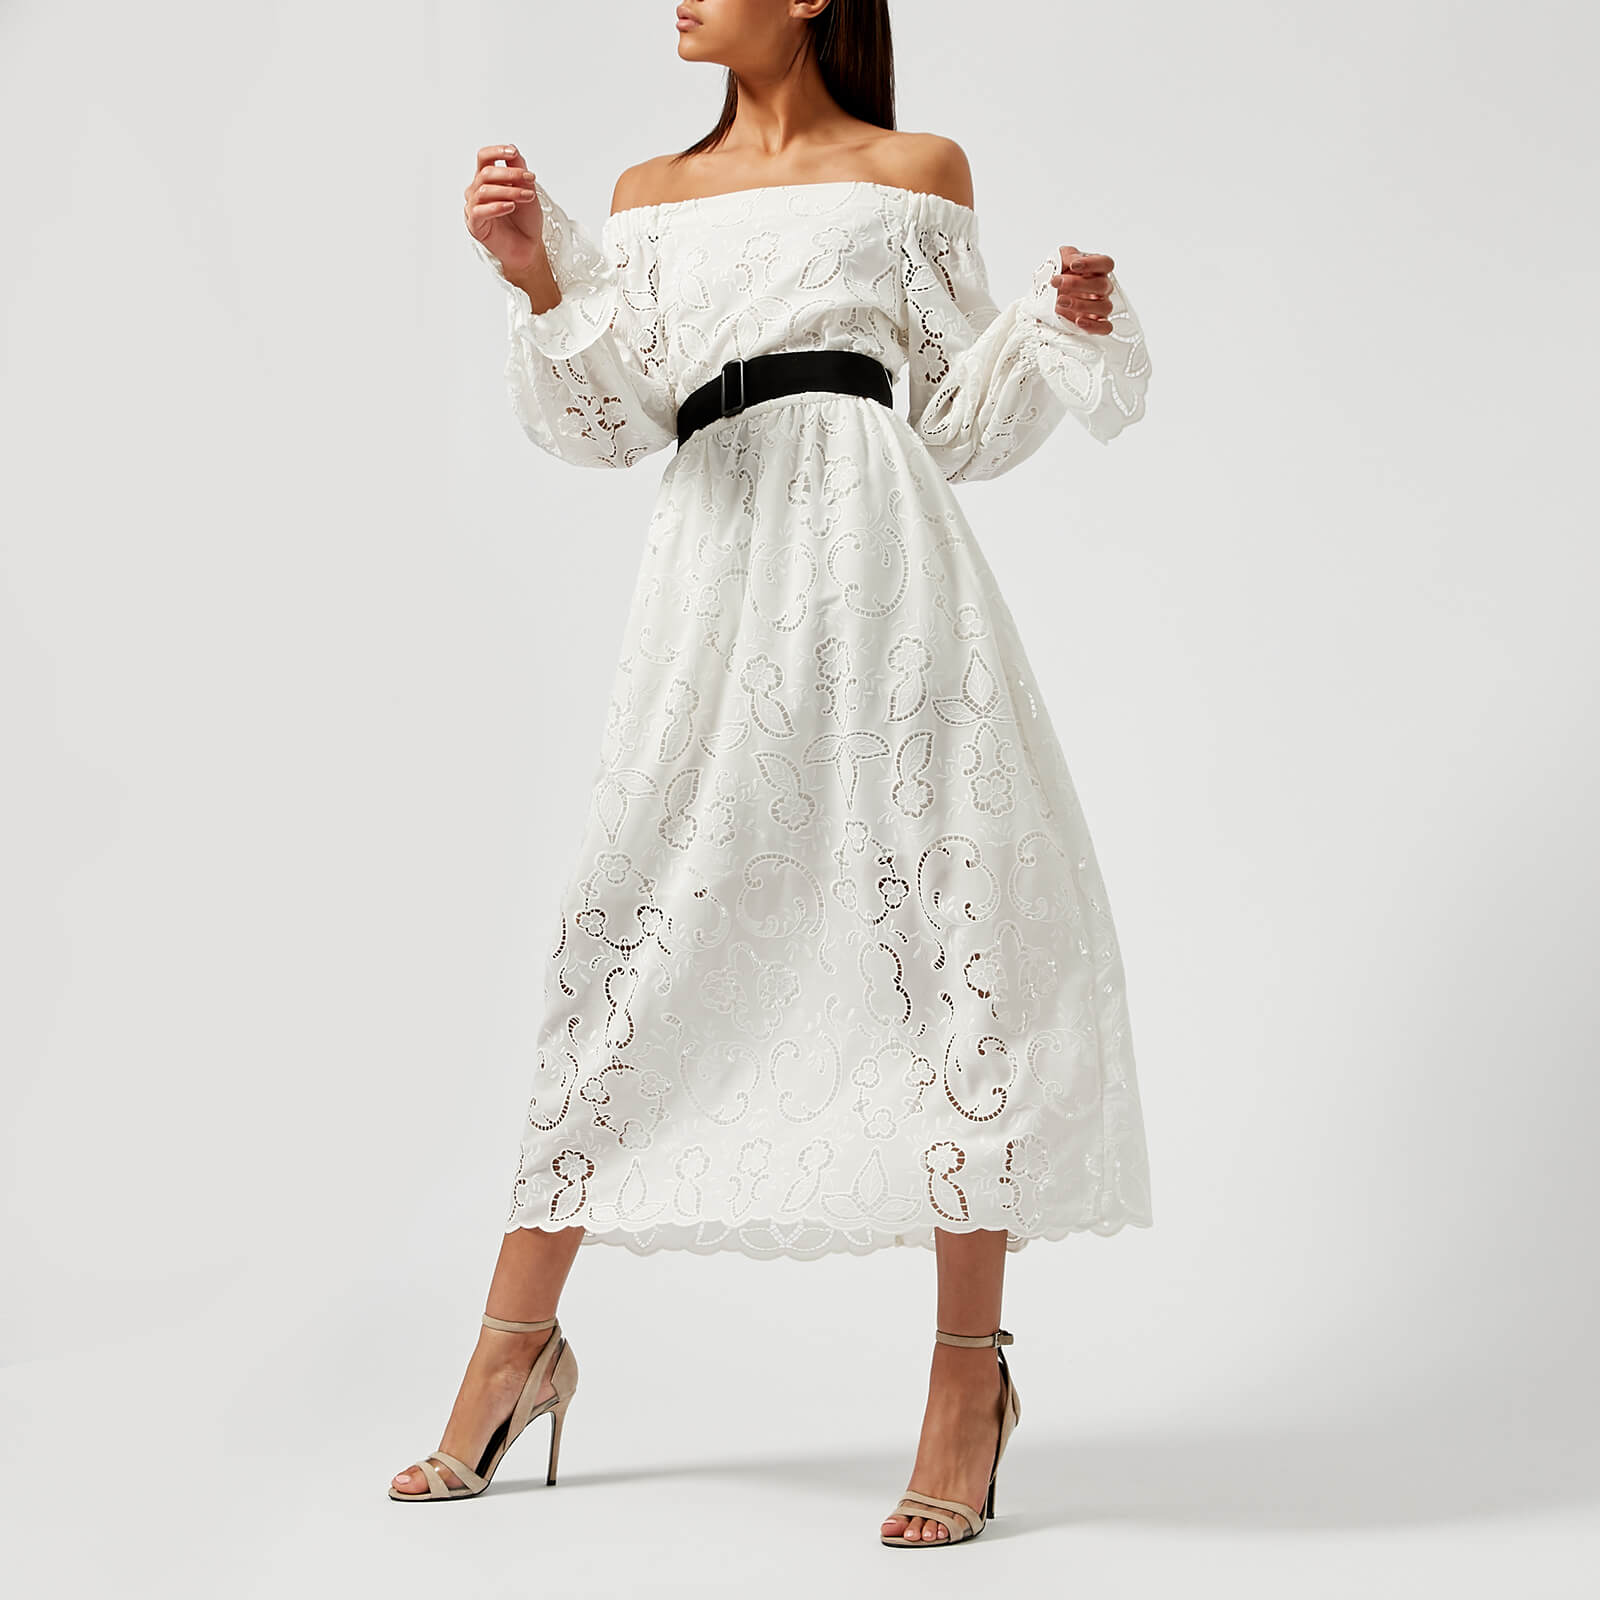 9adc5793a9c84 Perseverance London Women's Lily Cut Out Embroidered Crepe Midi Dress - Off  White - Free UK Delivery over £50